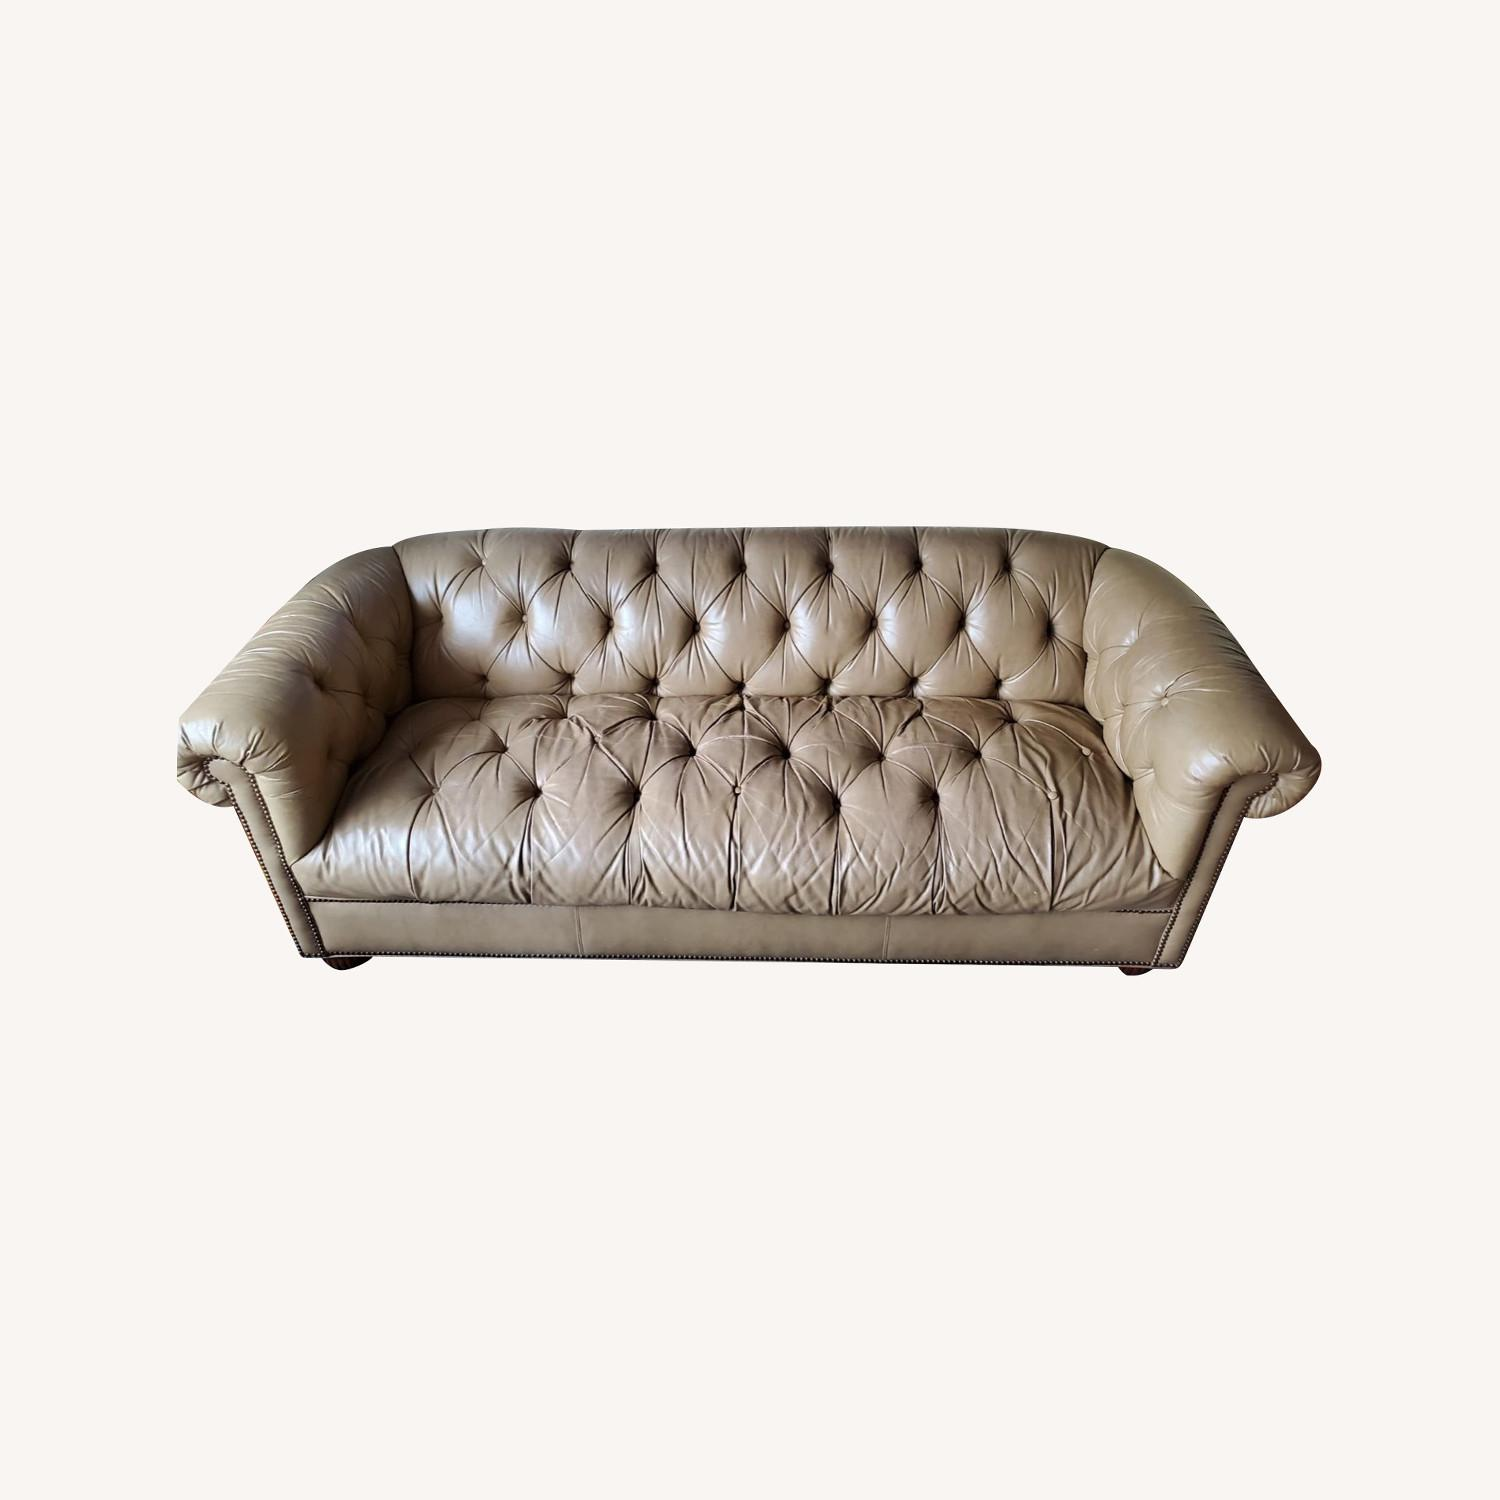 Beige Chesterfield Couch - image-0